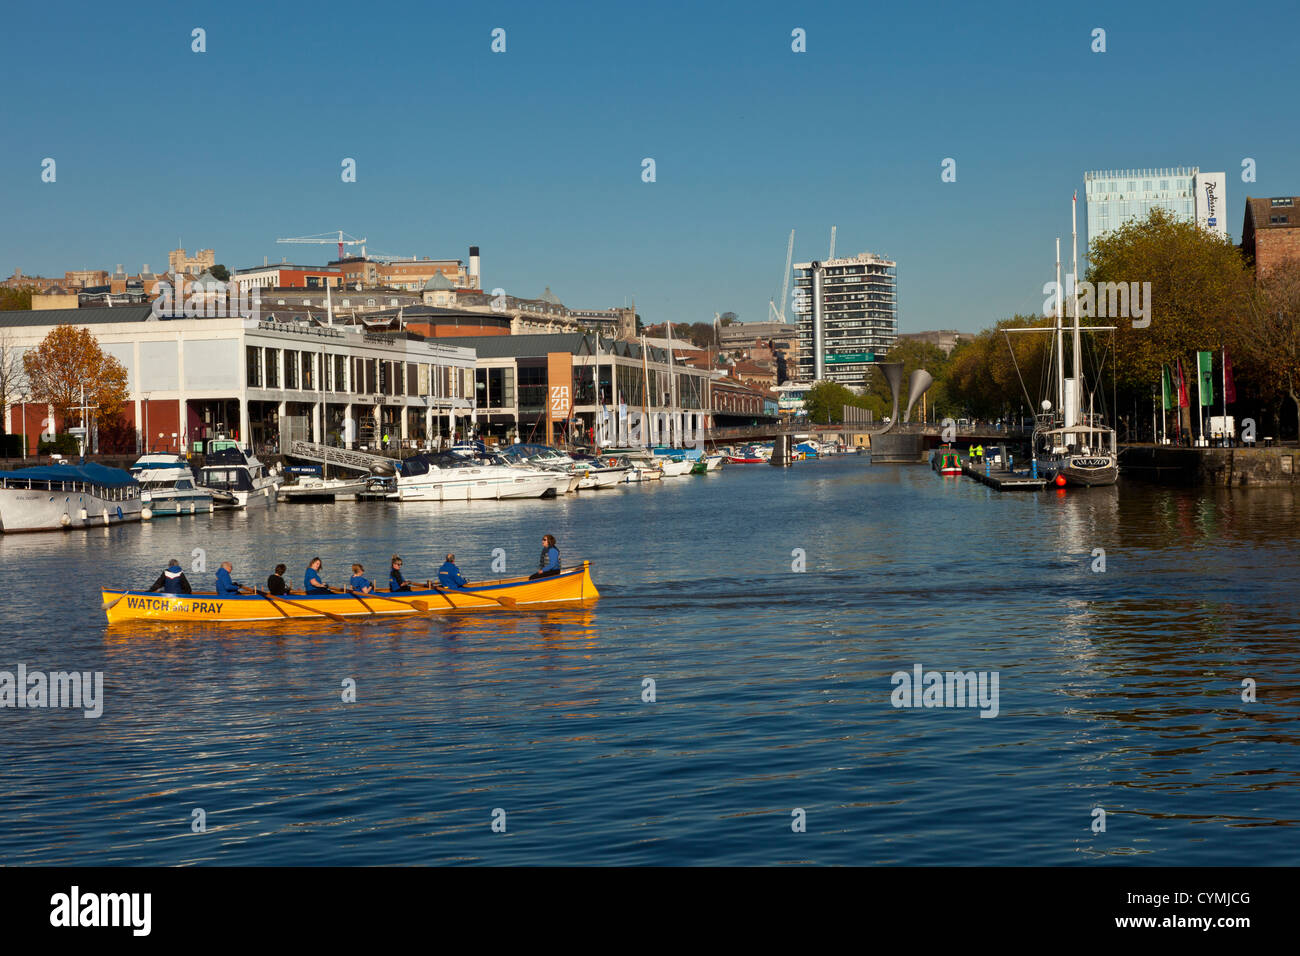 Lady rowers practicing in Bristols floating harbor harbour. - Stock Image